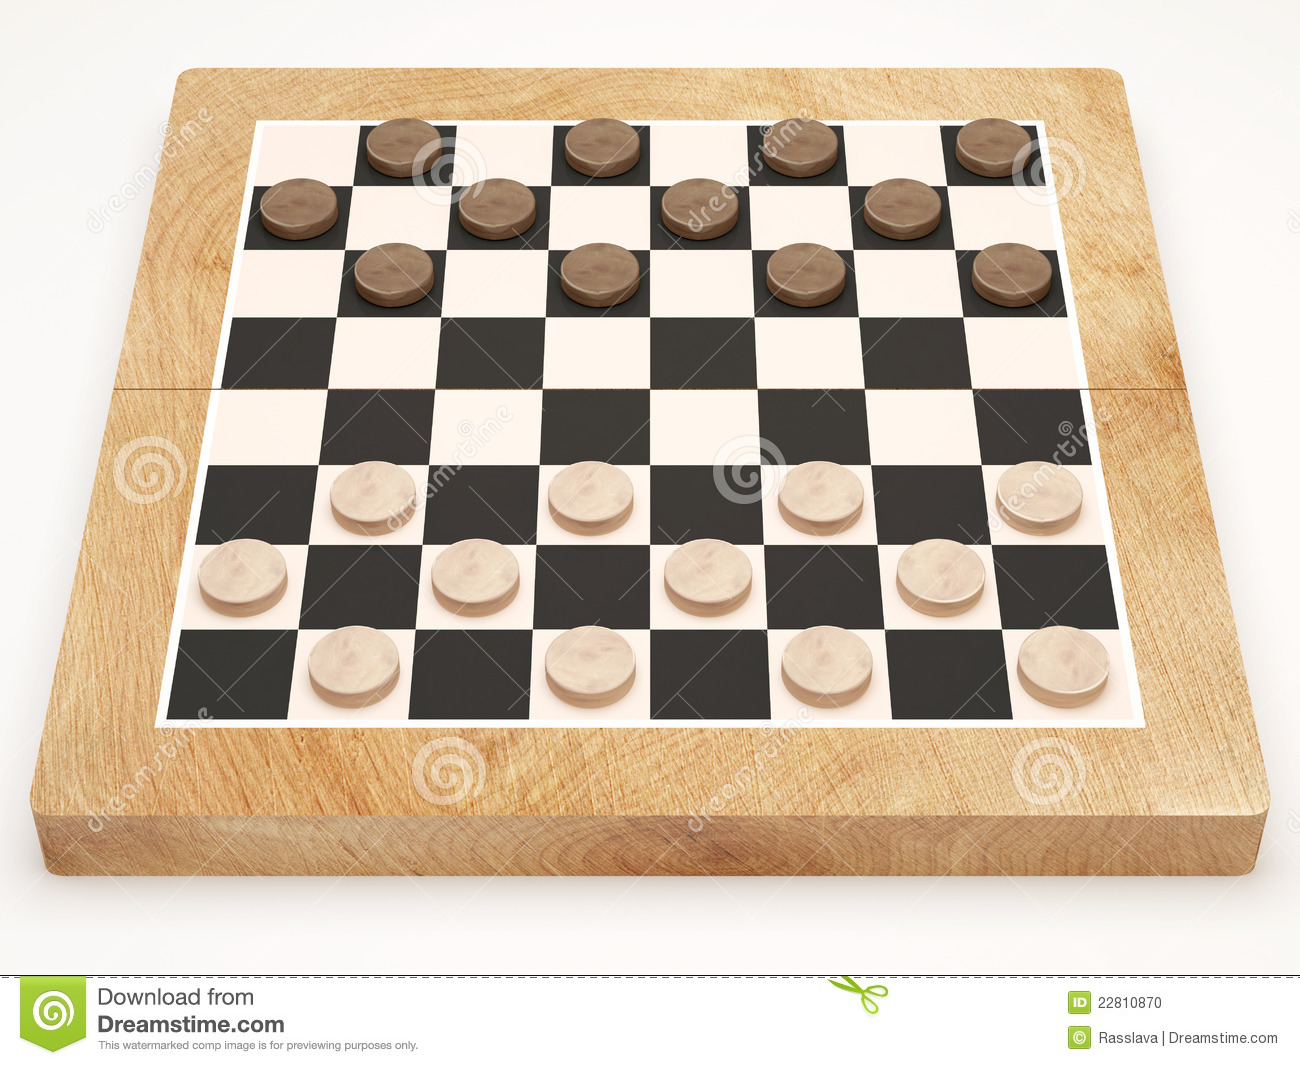 Wooden checker board wooden checkerboard in - Checkers Game On White Background Stock Photo Image